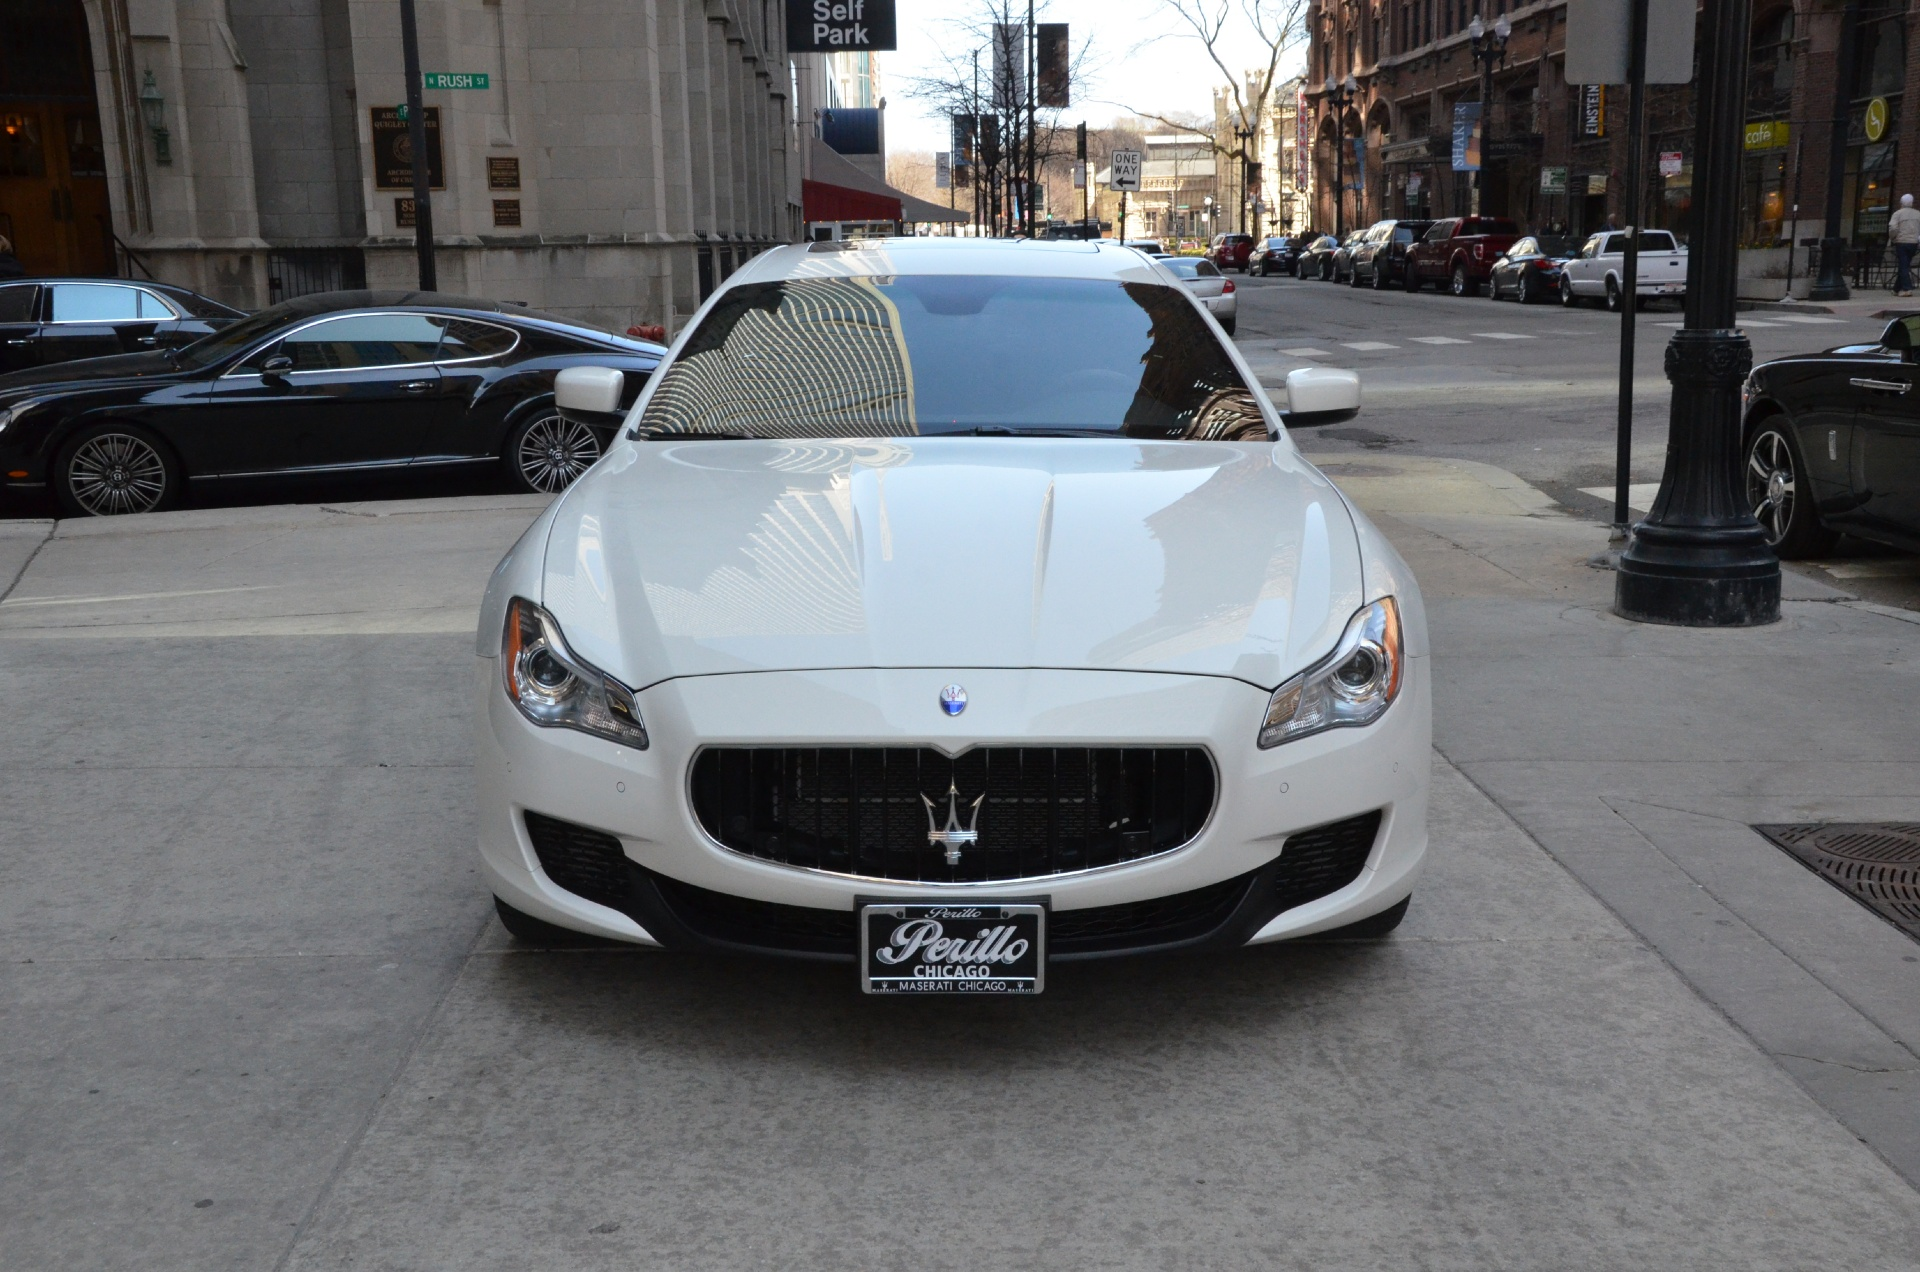 2014 maserati quattroporte sq4 s q4 stock gc1642a for sale near chicago il il maserati dealer. Black Bedroom Furniture Sets. Home Design Ideas